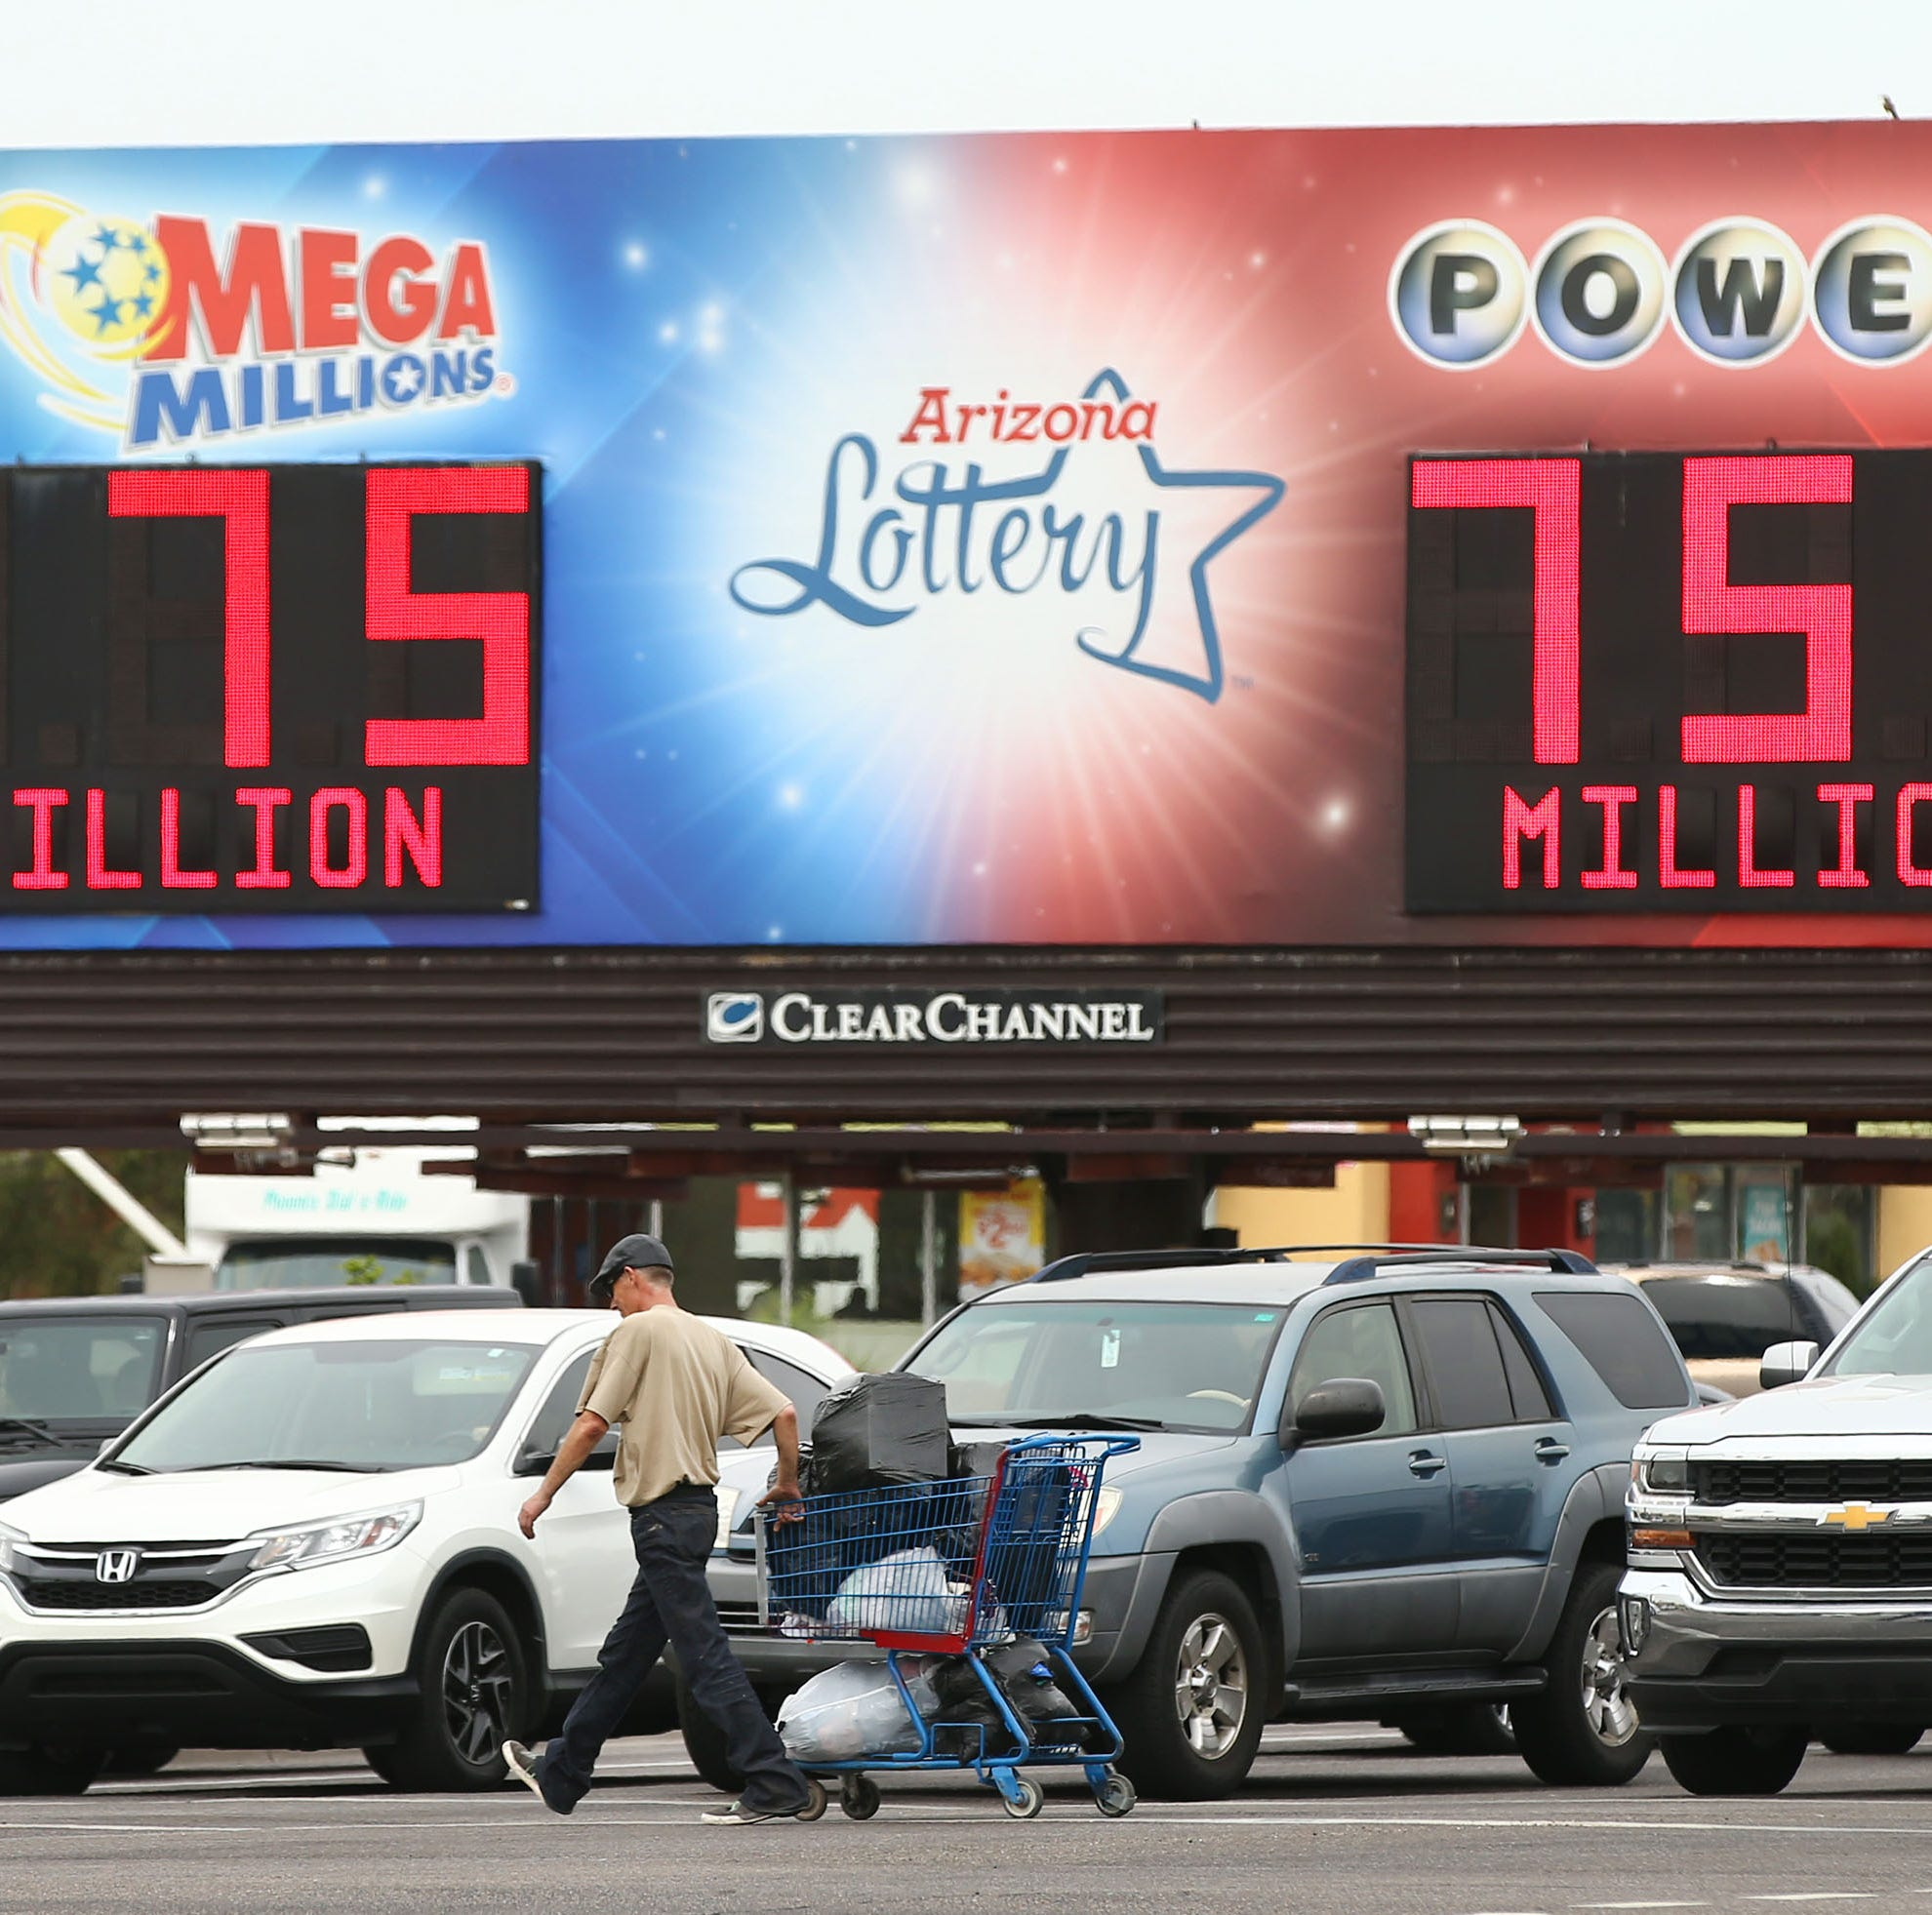 You win Powerball, then you die: What happens to the money, and how to plan for that